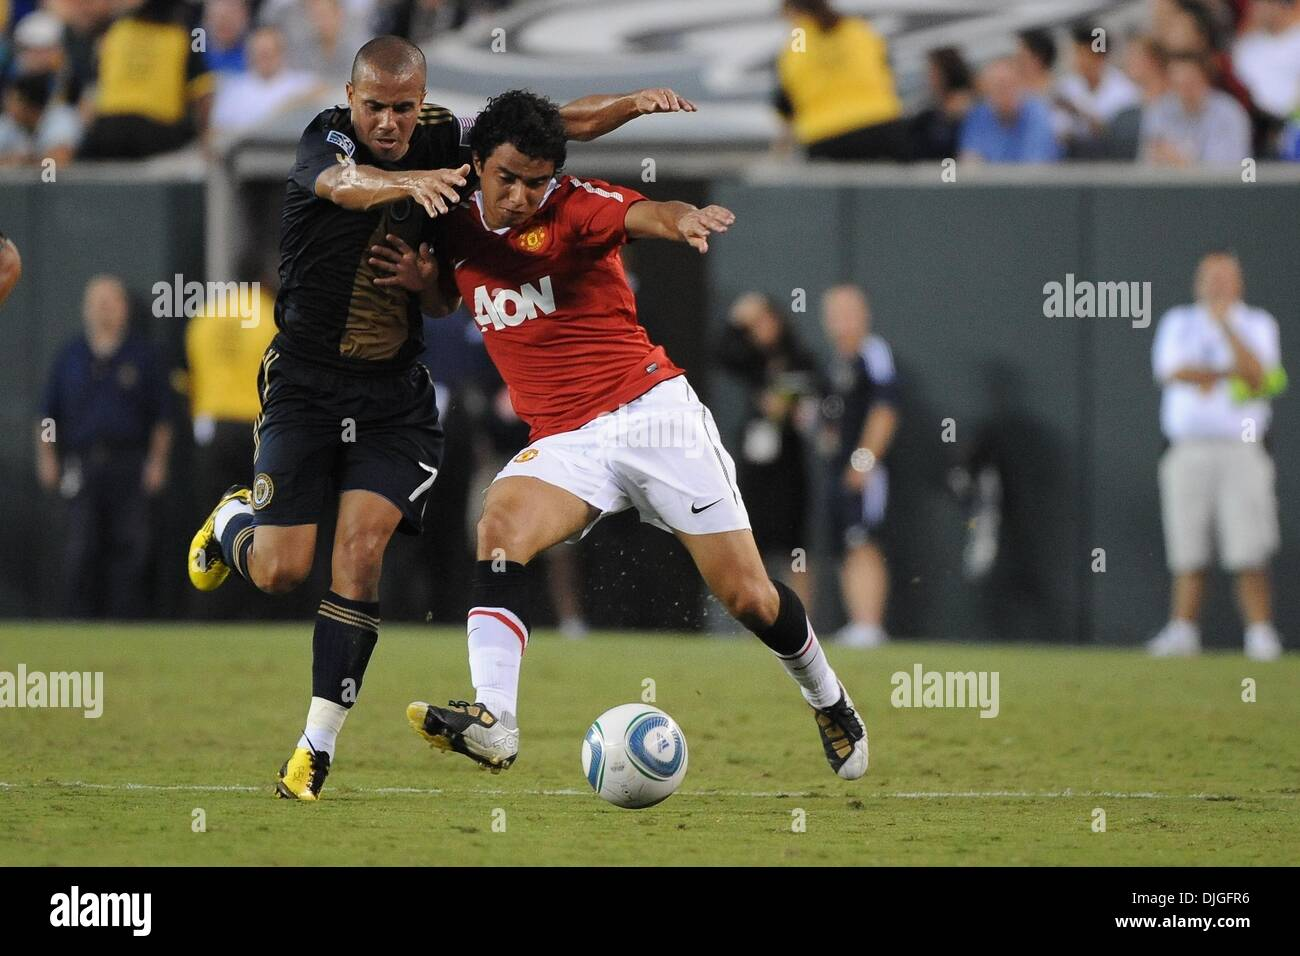 July 21, 2010 - Philadelphia, PA, United States of America - 21 July 2010 - Manchester United Defender Rafael DiSilva (#21) fights off Philadelphia Union Midfielder Fred (#7) The Eighteen times English Premier League Champion Manchester United face Major League Soccer's newest team, The Philadelphia Union, at Lincoln Financial Field in Philadelphia, PA. The visitors won 1-0. Mandat - Stock Image